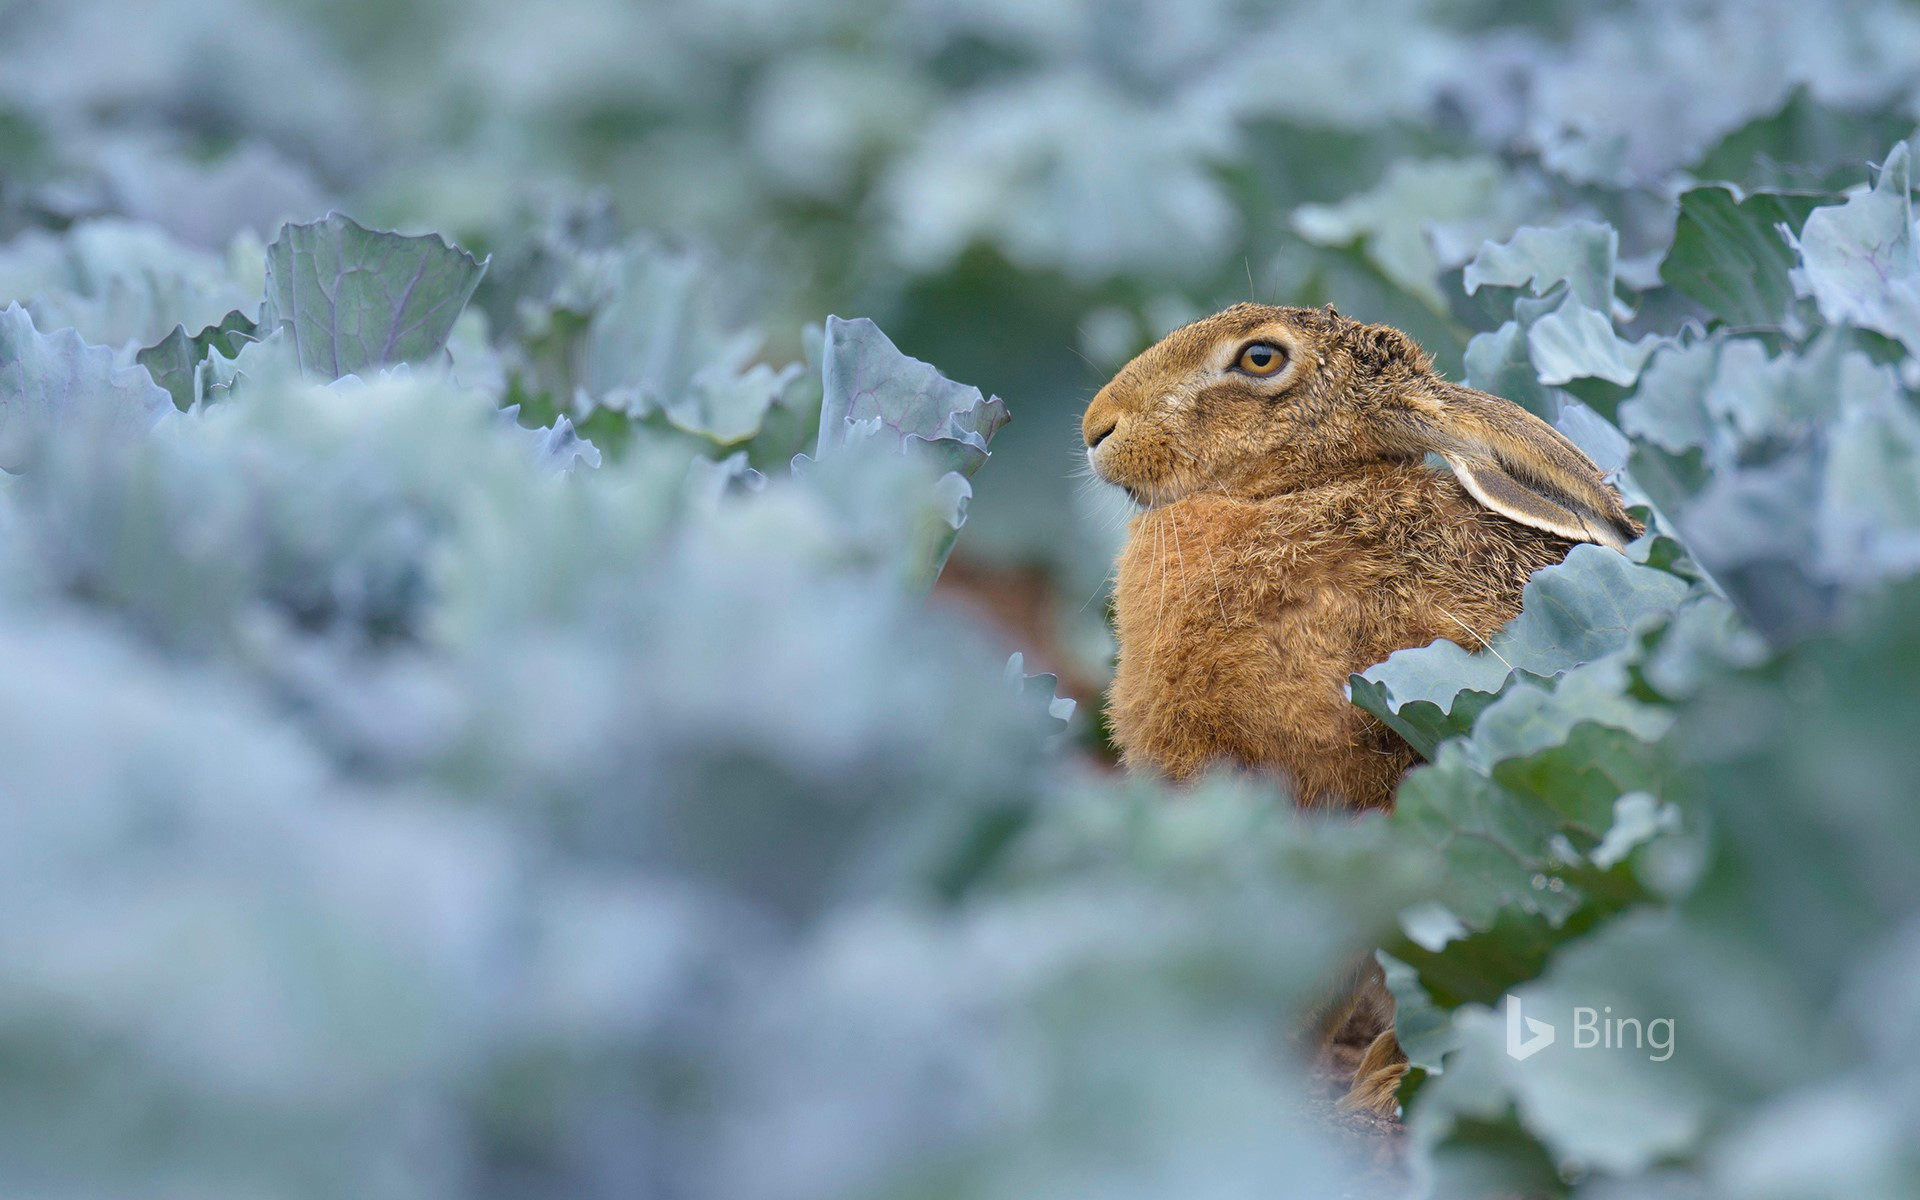 European brown hare (Lepus europaeus) in red cabbage field, Hessen, Germany